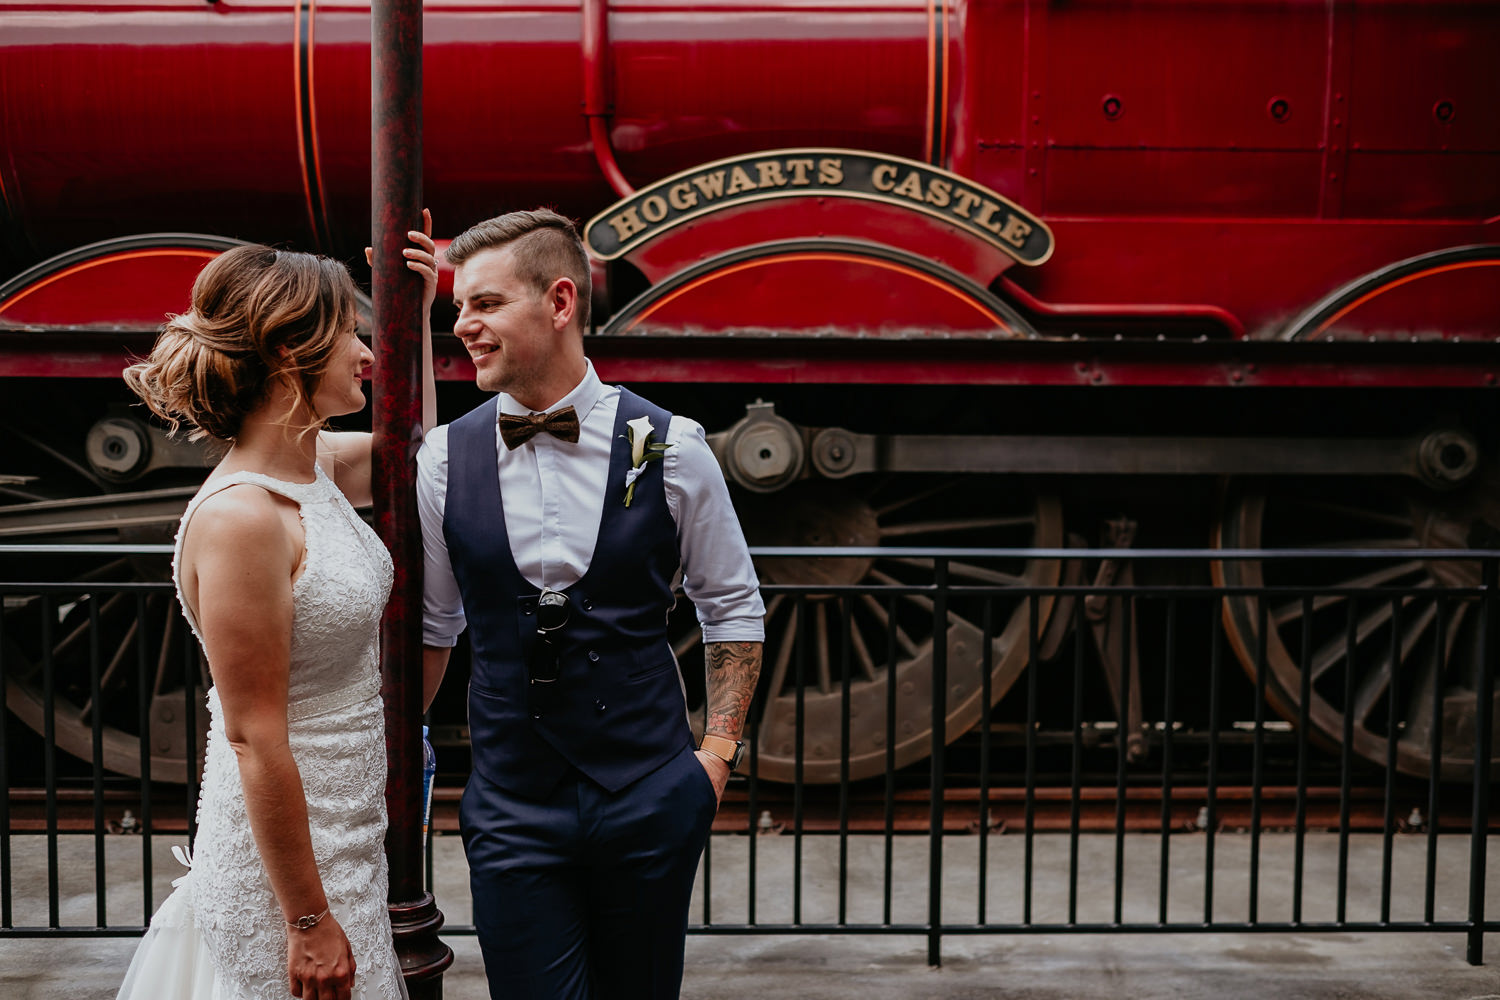 bride and groom posing in front of red Hogwarts Express train